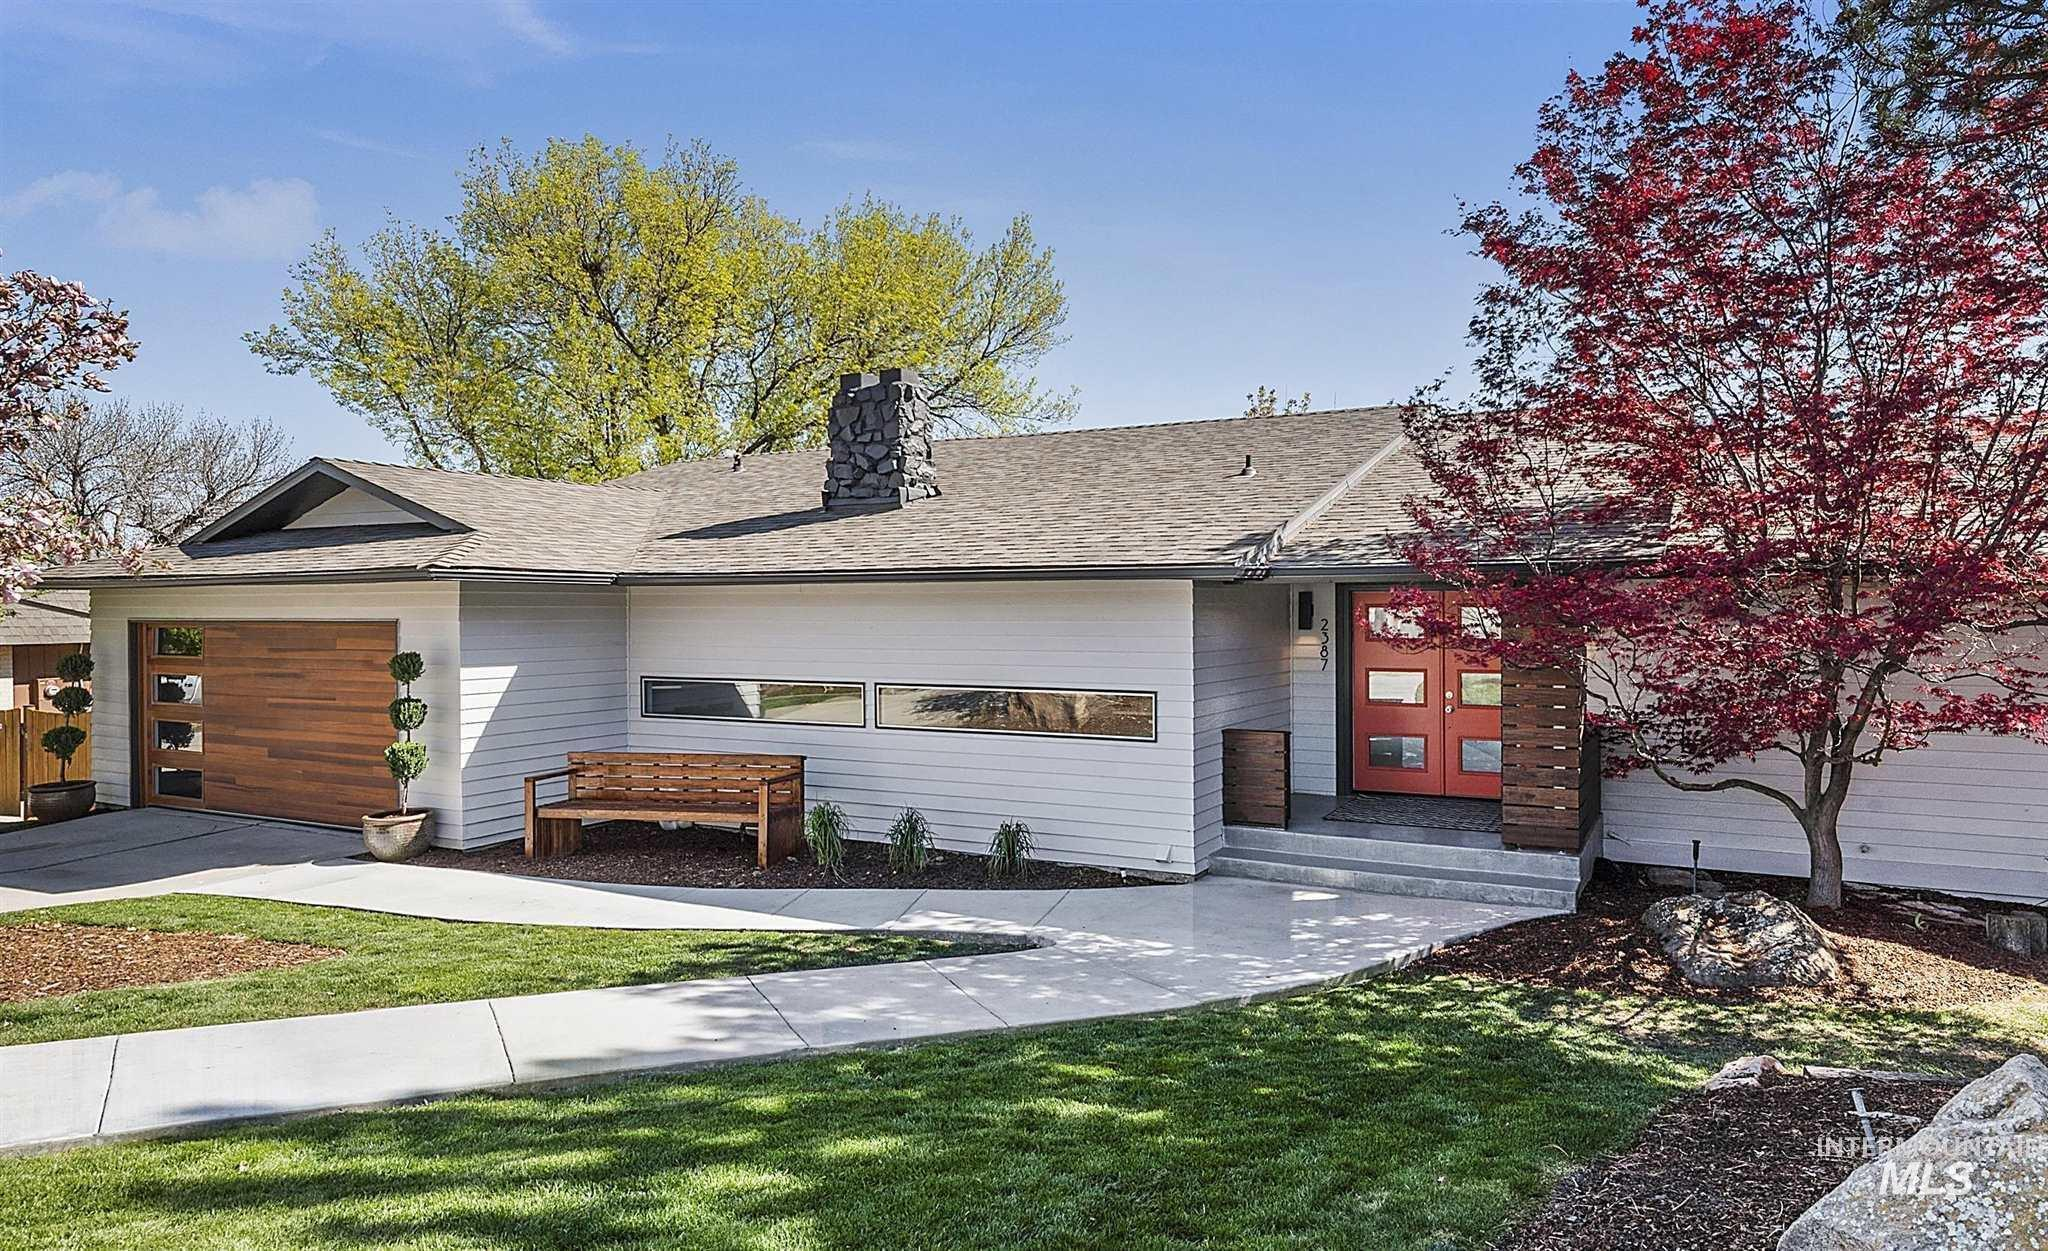 2387 S Ridgeview Way Property Photo - Boise, ID real estate listing